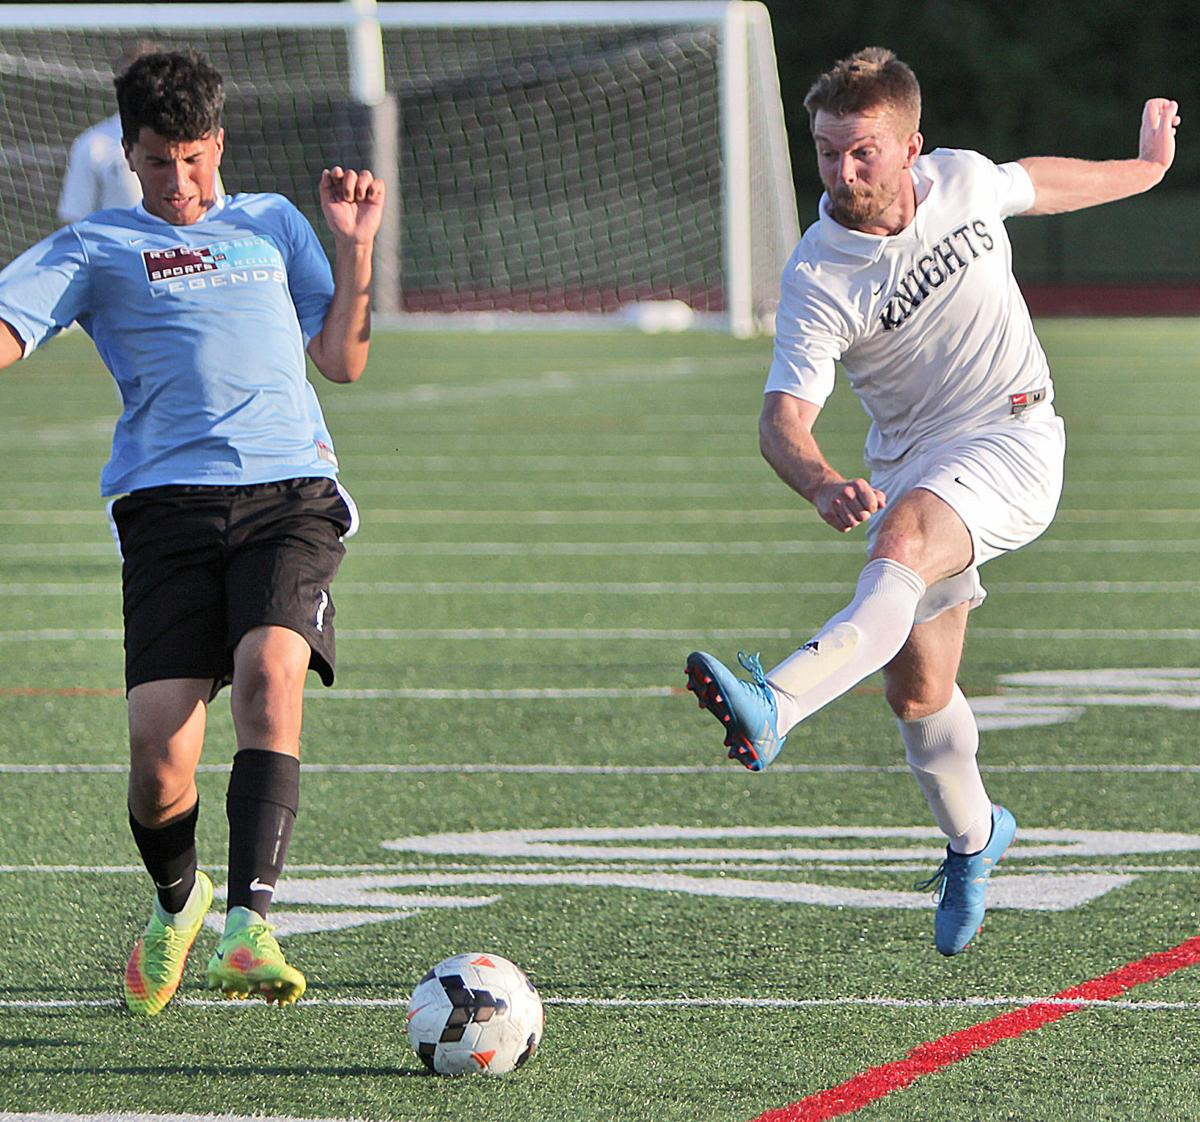 Knights Defeat Mid Cape United In Men's Soccer